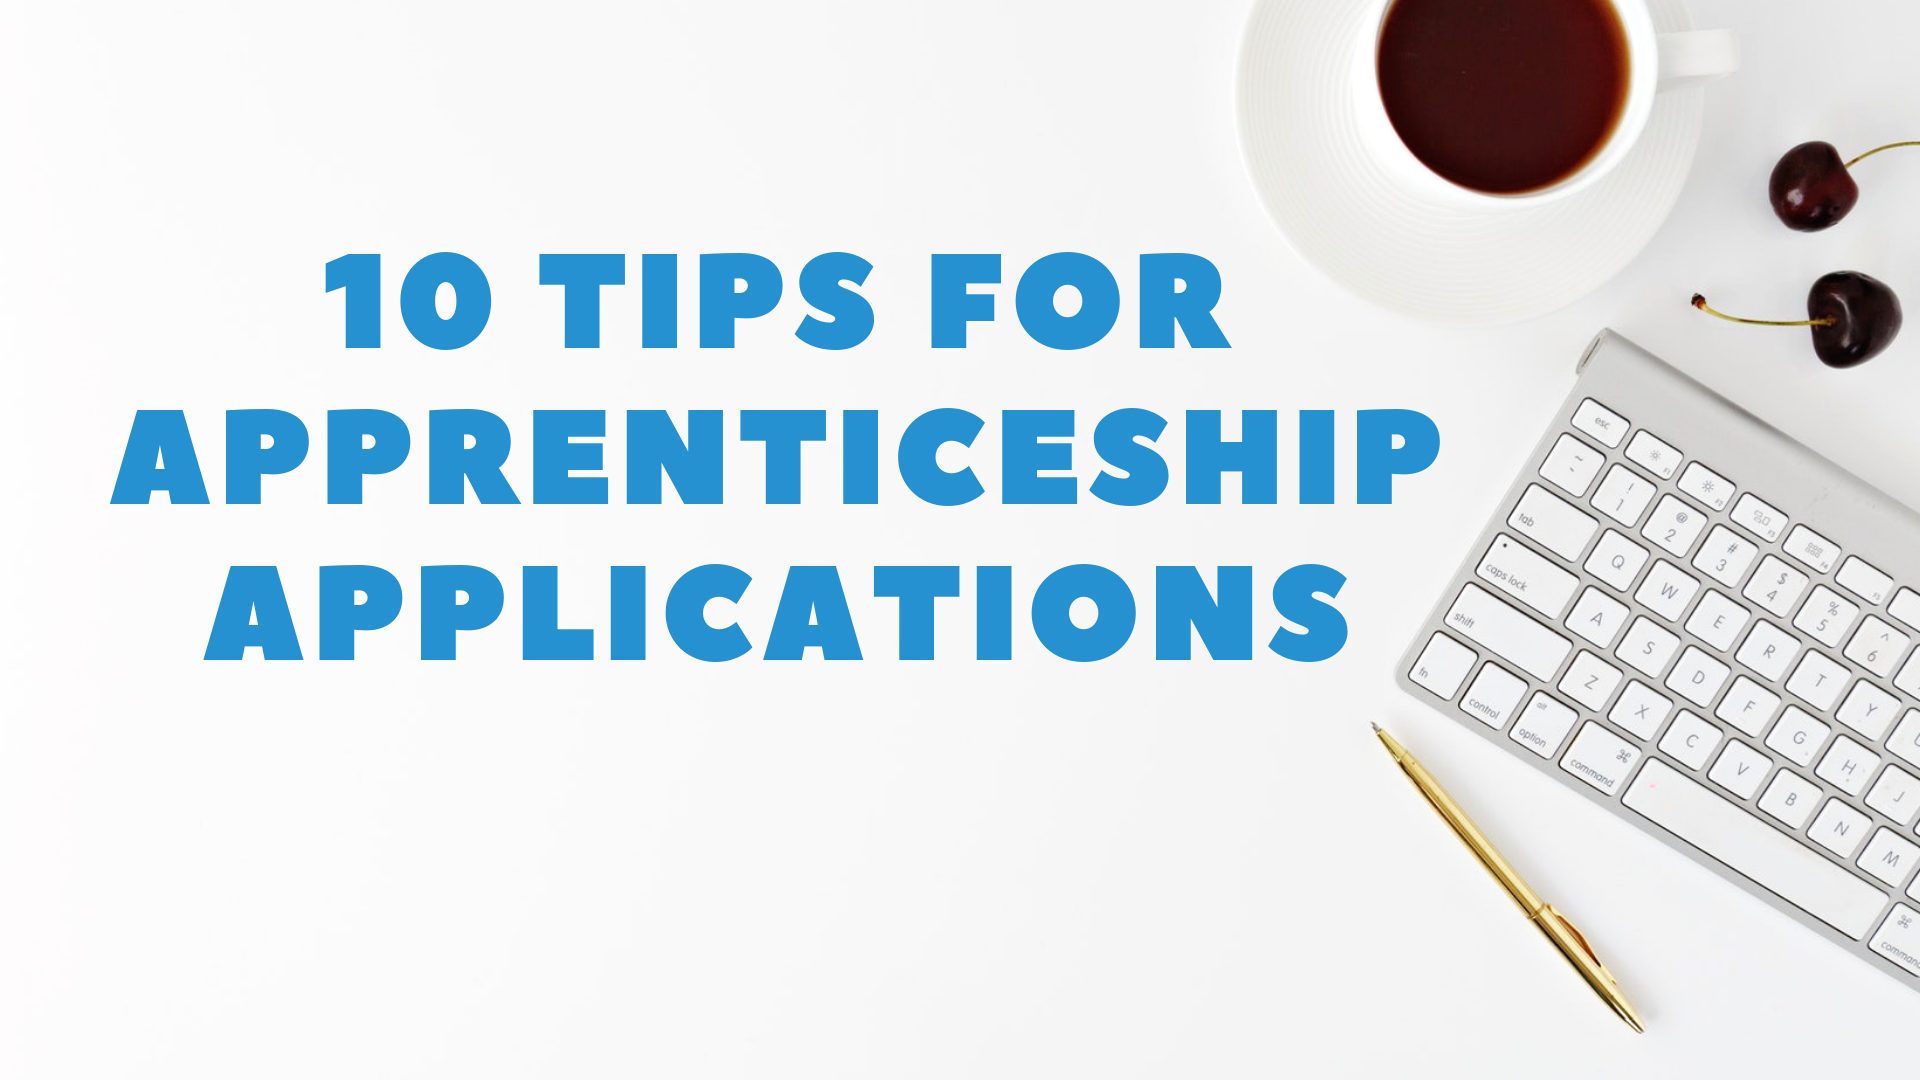 10-Tips-forApprenticeshipApplications-1